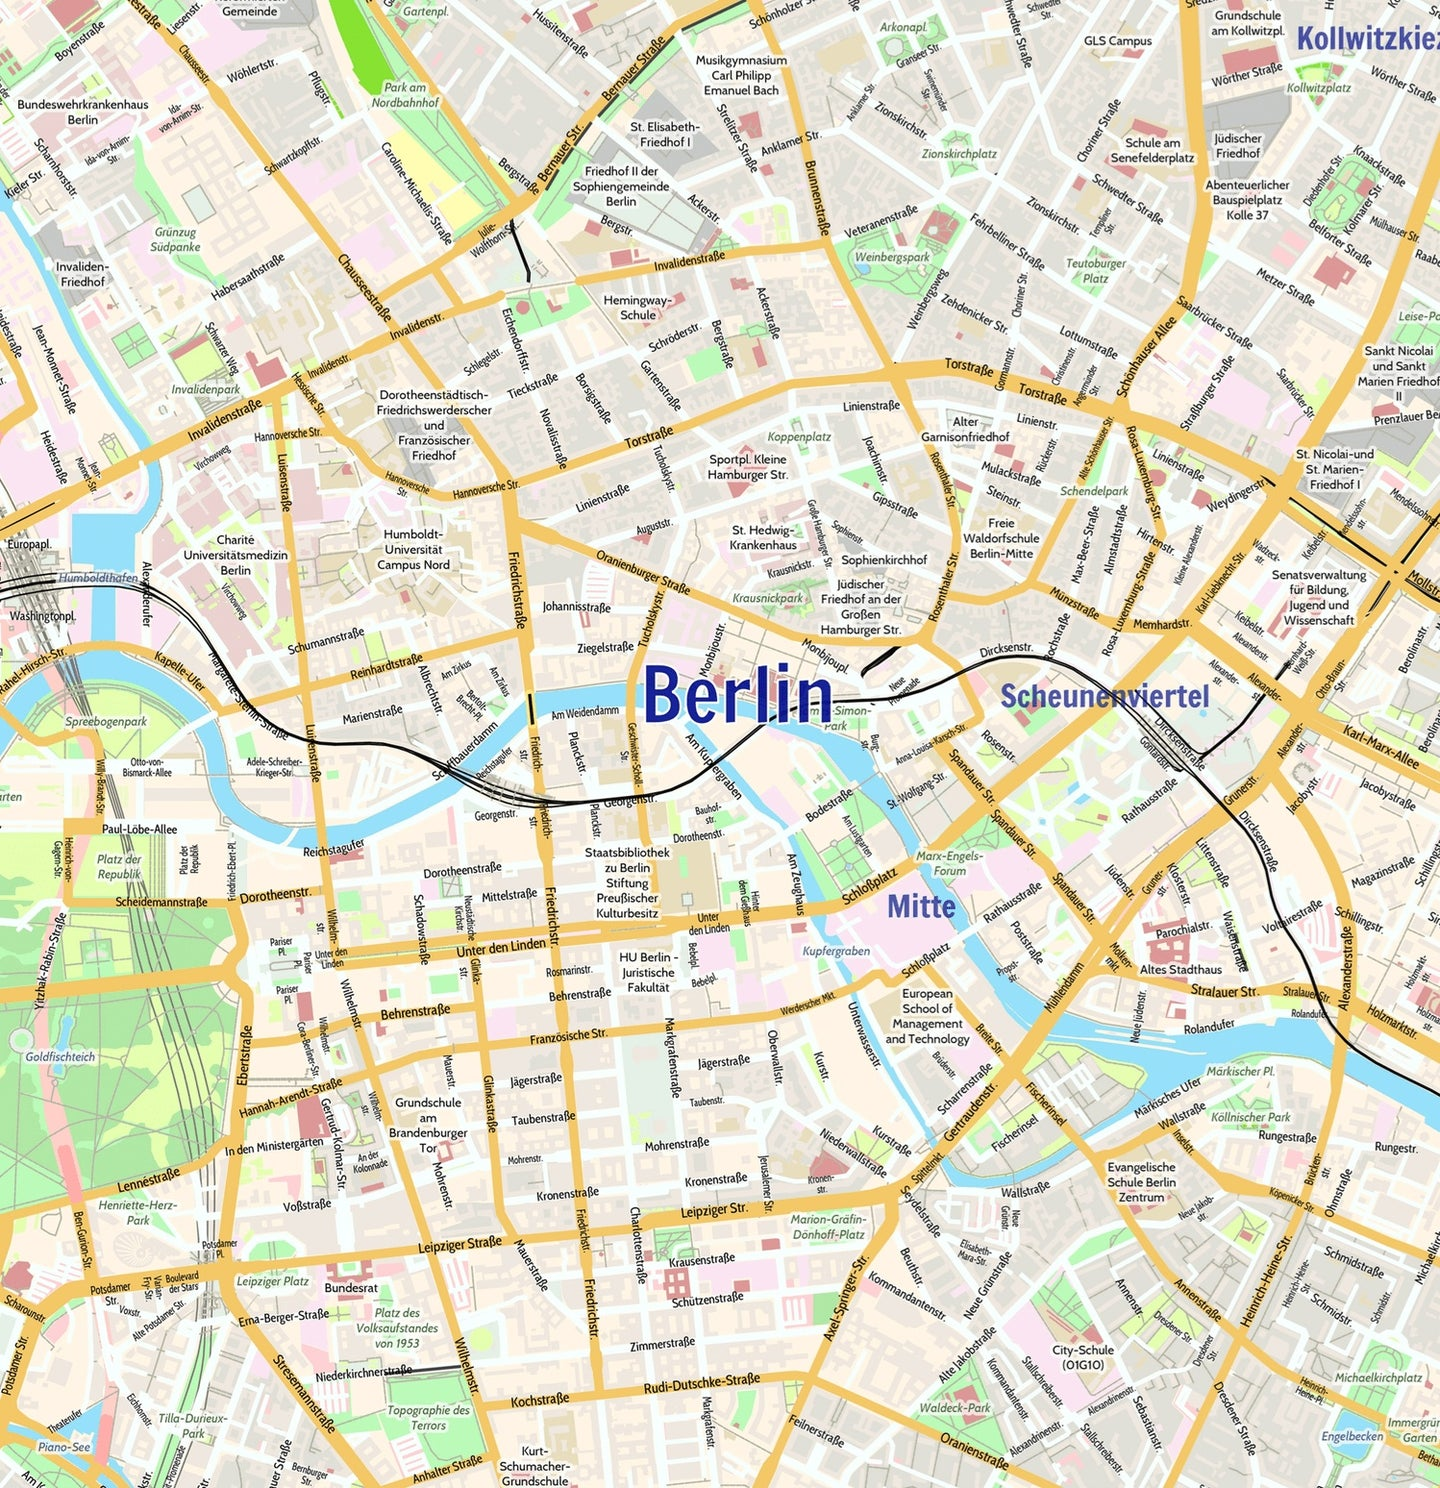 Berlin Map Of Germany.Berlin City Map Laminated Wall Map Of Berlin Germany